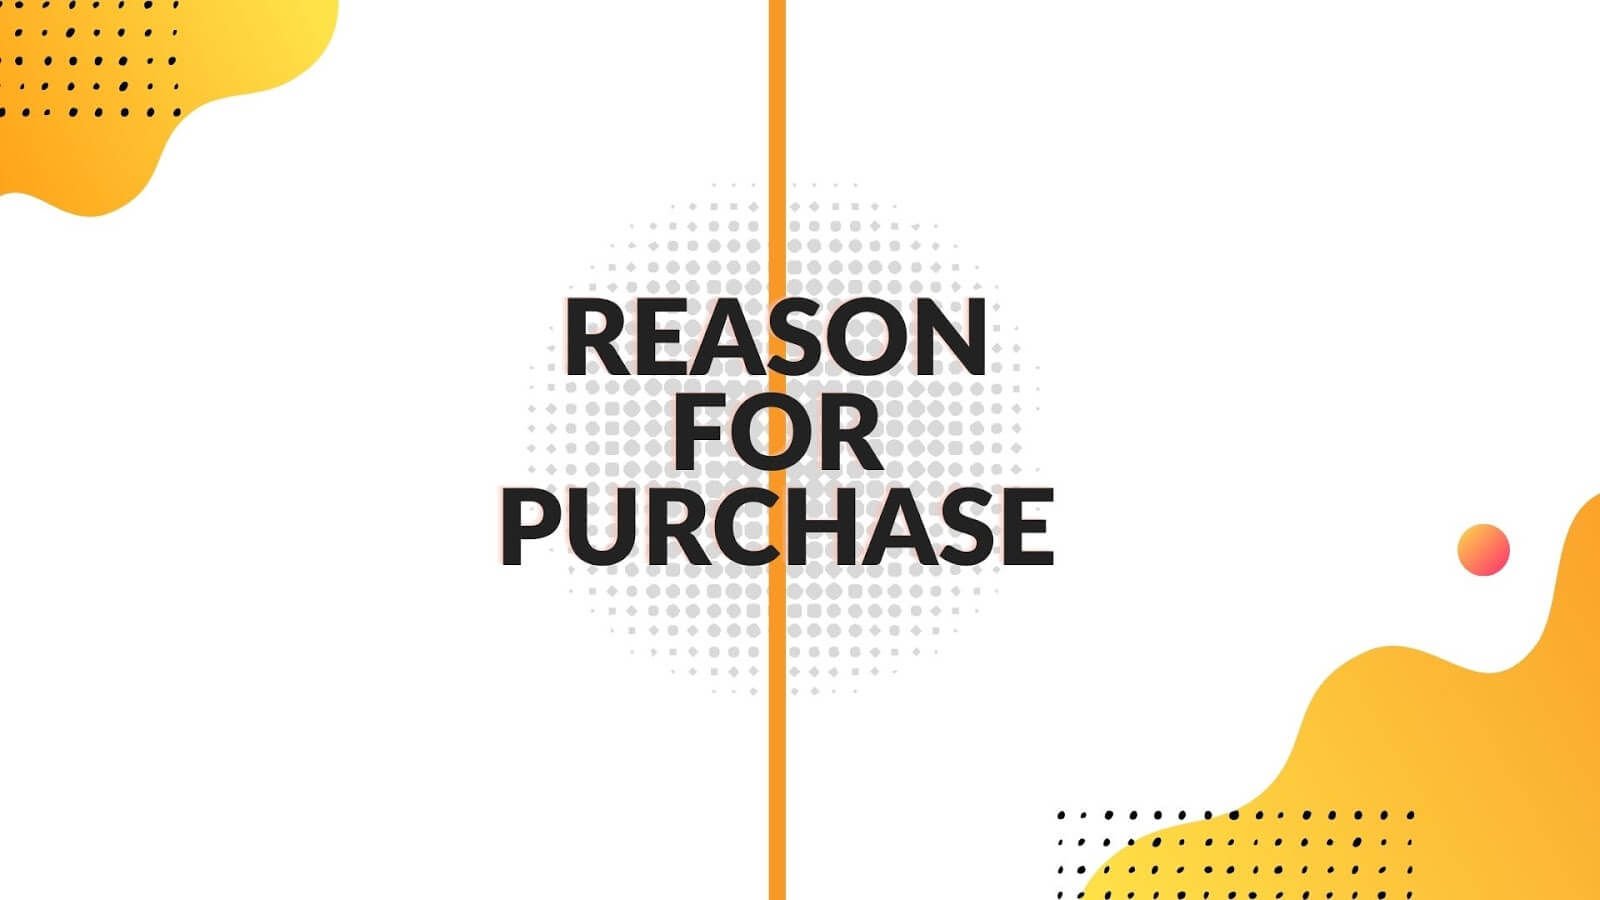 Reason for Purchase with Intent Content Driven Marketing Strategy